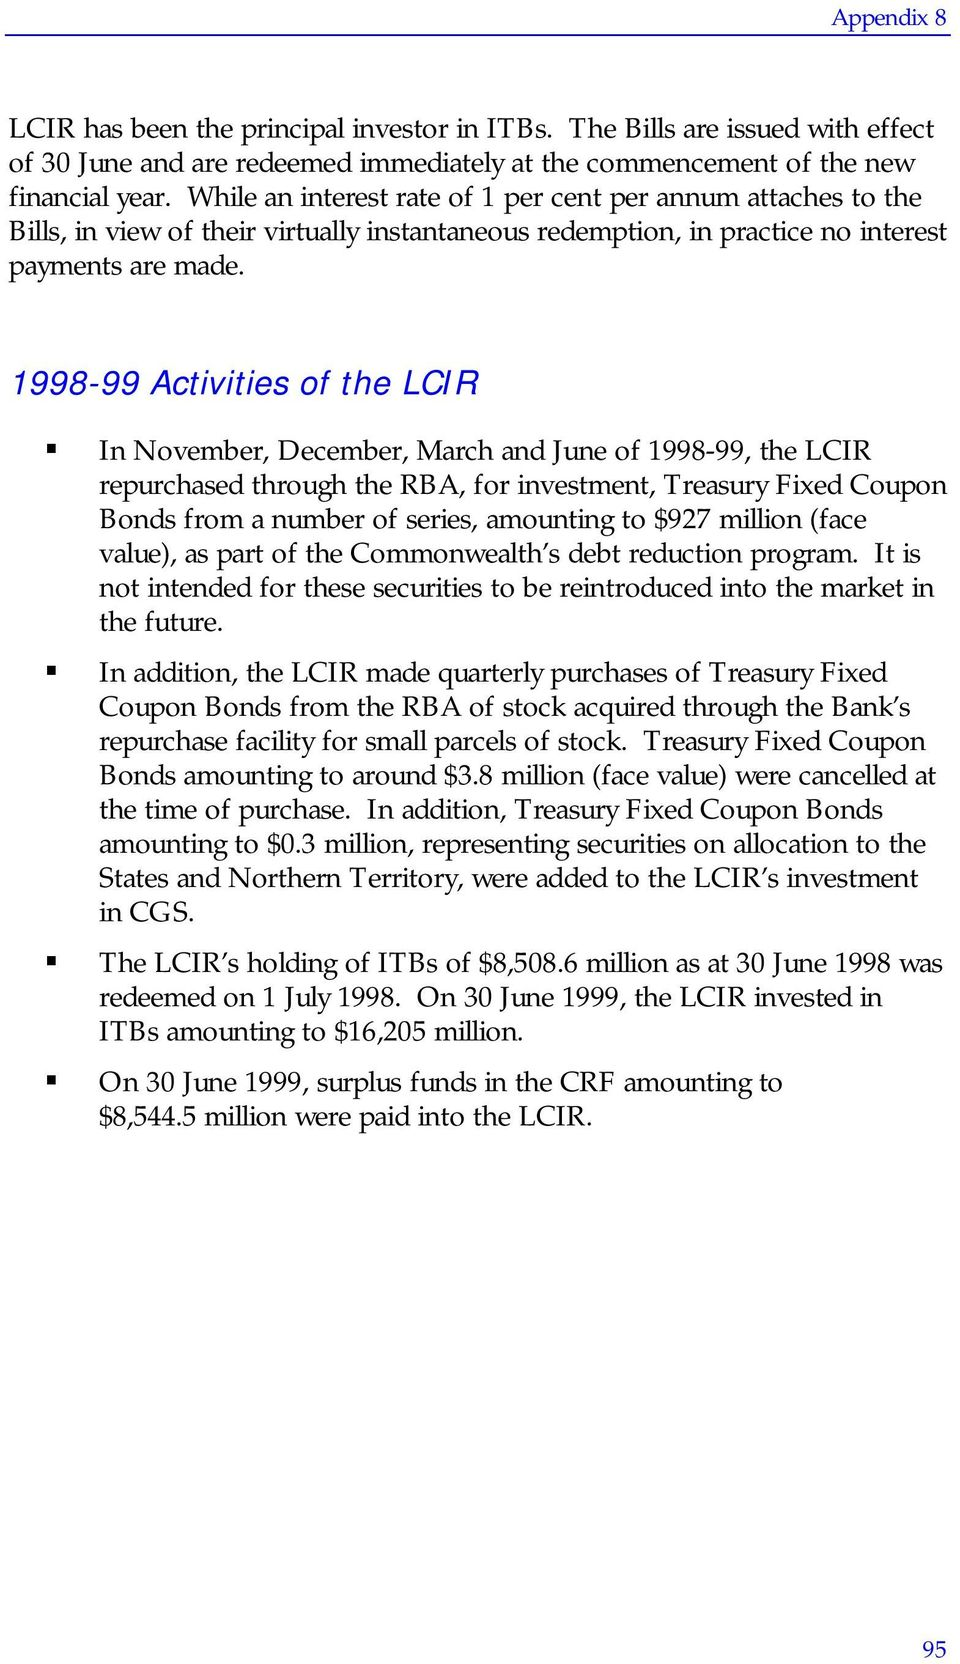 1998-99 Activities of the LCIR In November, December, March and June of 1998-99, the LCIR repurchased through the RBA, for investment, Treasury Fixed Coupon Bonds from a number of series, amounting